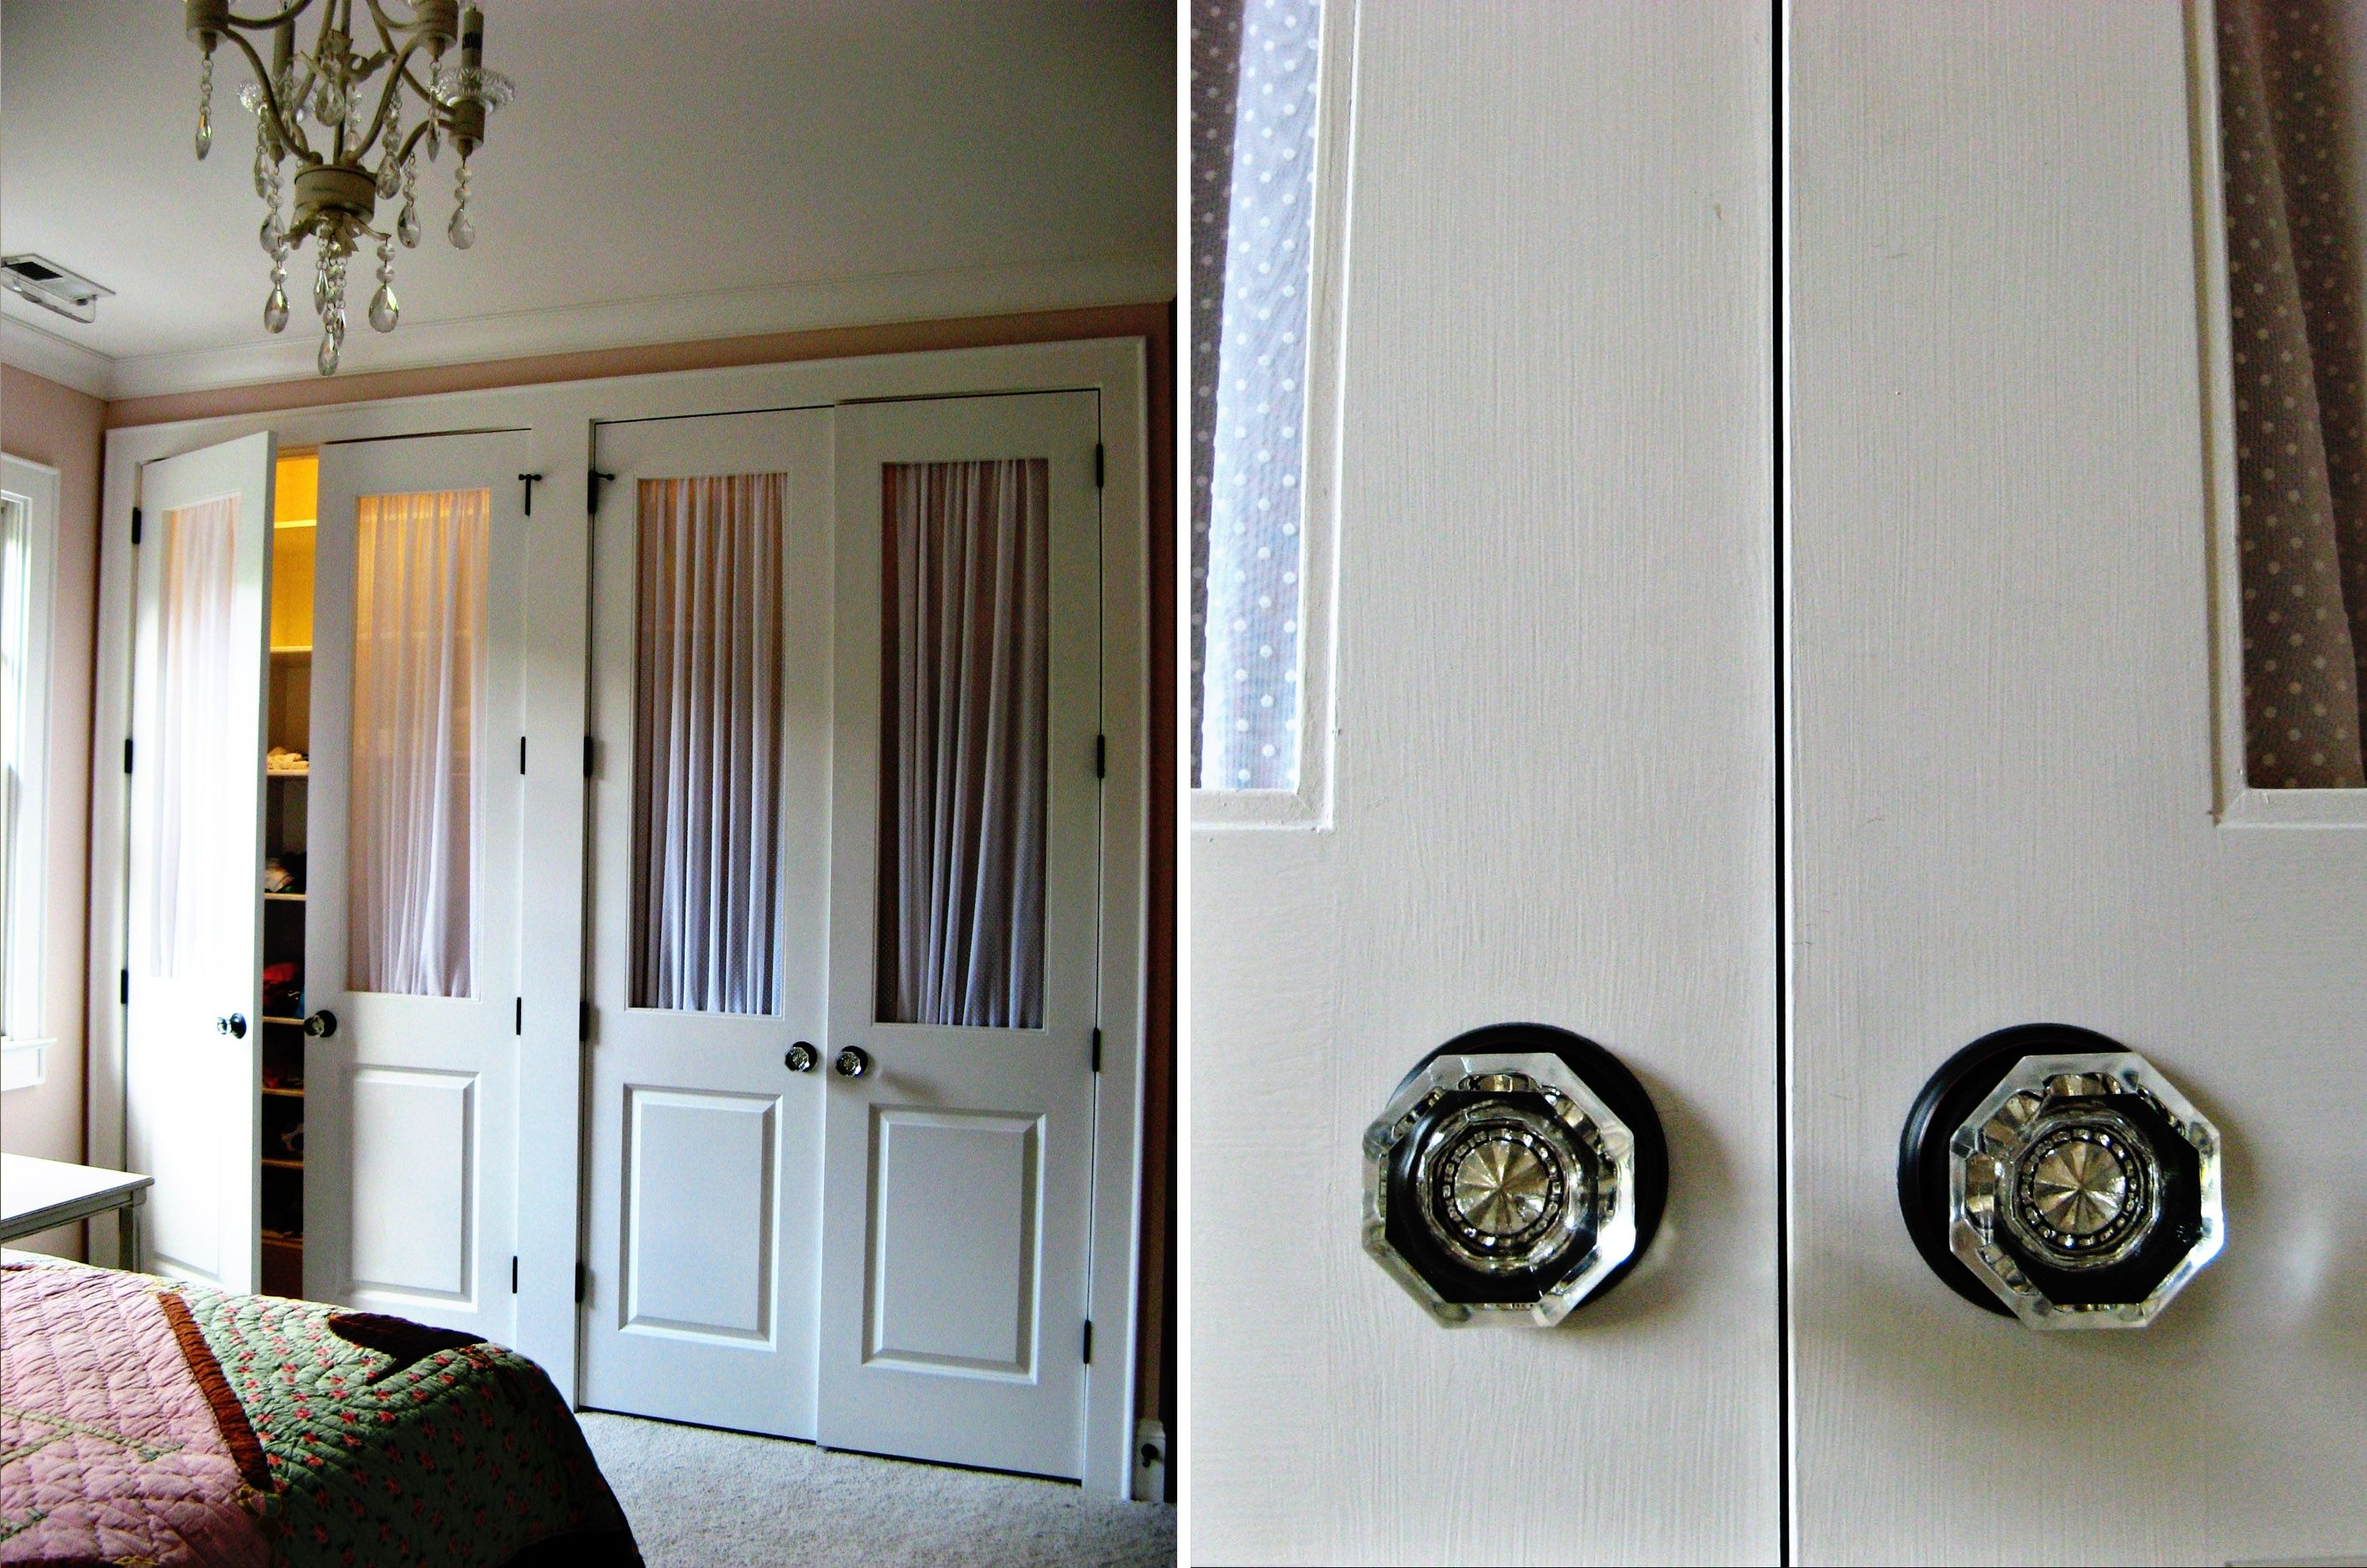 Clear Glass Interior Door Knobs   There Is A Homesick Bond Between Knobs  And Doors. There Certainly Are A Number Of Door Kno